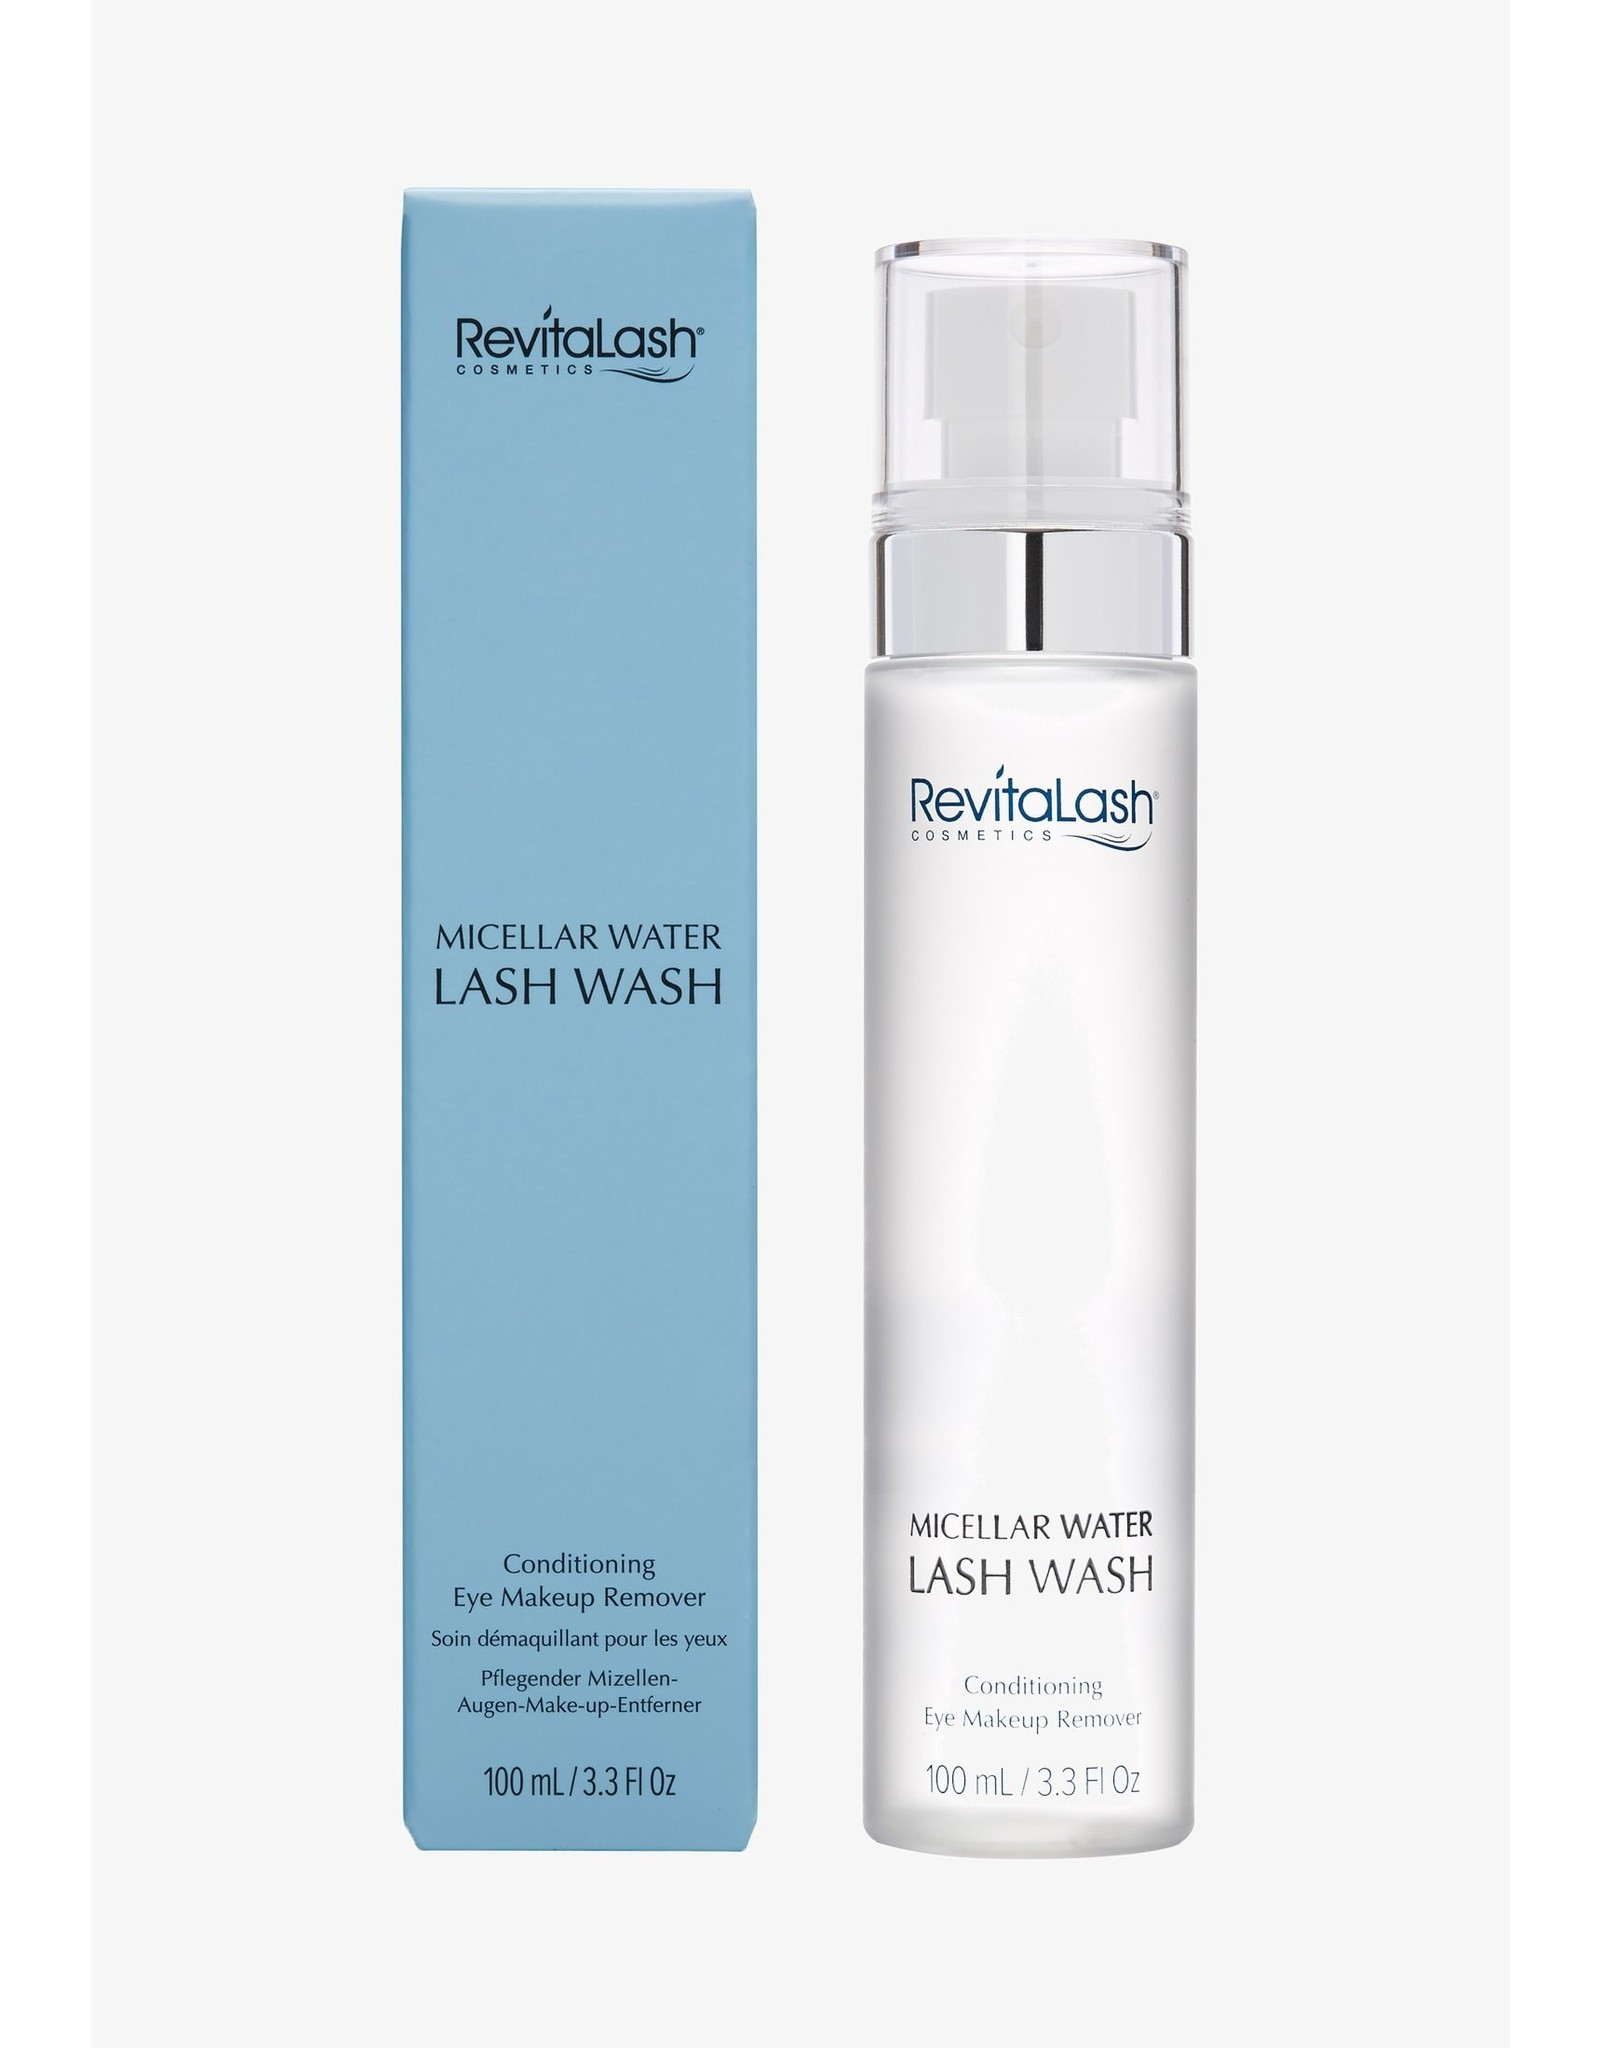 Revitalash Cosmetics Micellar Water Lash Water